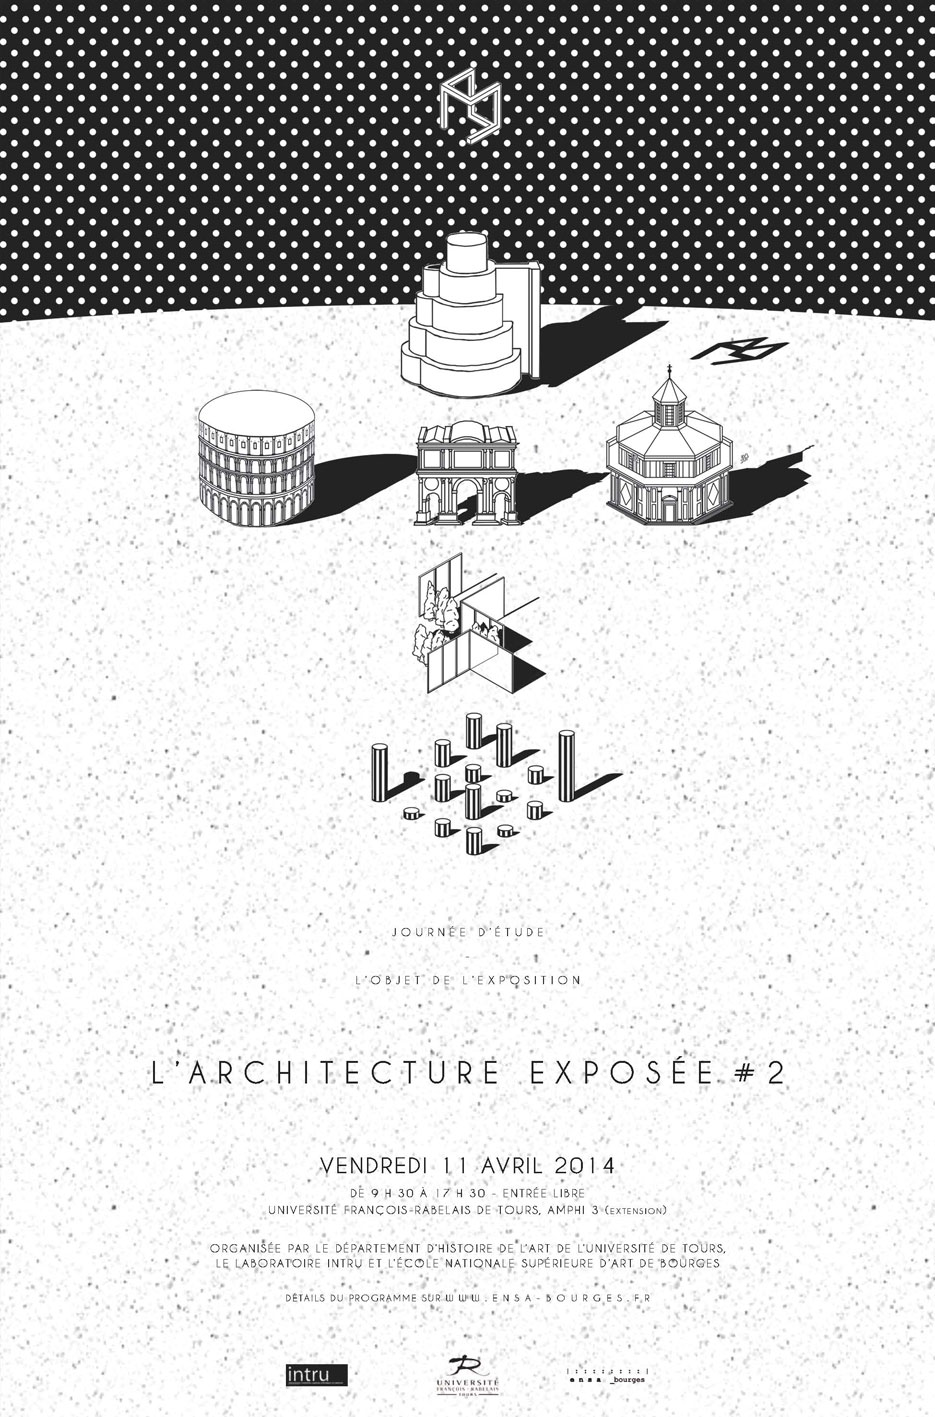 AfficheArchitecture exposee2